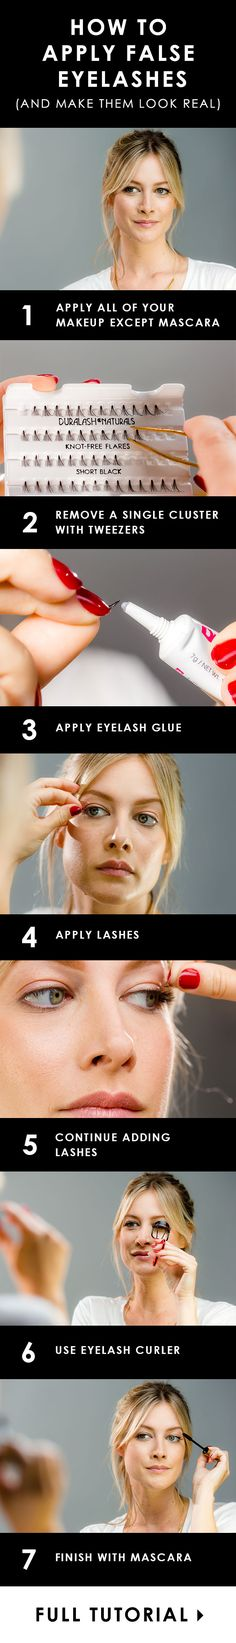 How to apply false eyelashes (and make them look real)